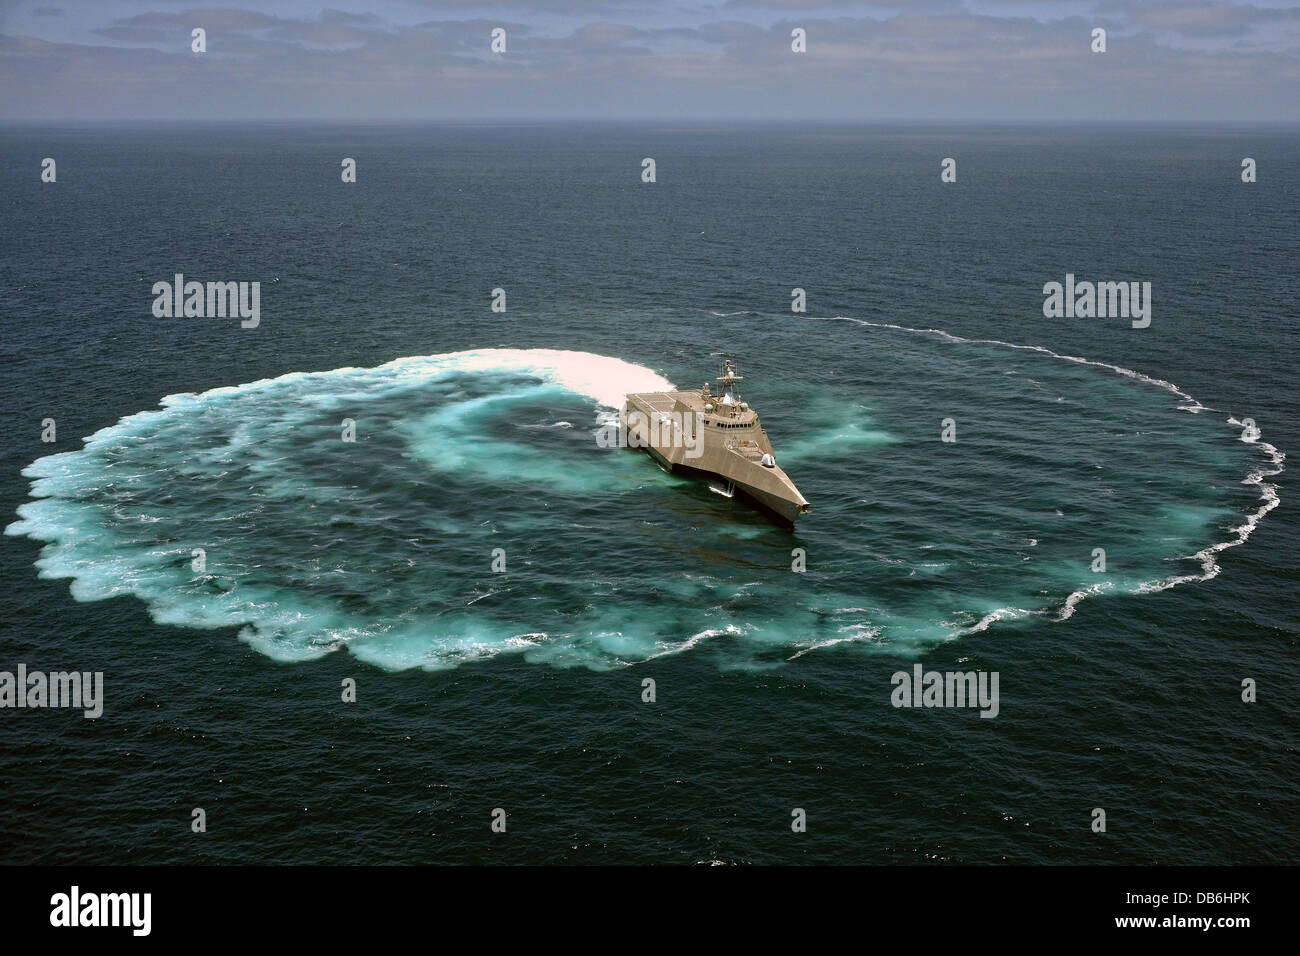 US Navy littoral combat ship USS Independence demonstrates its maneuvering capabilities by completing an 360-degree - Stock Image